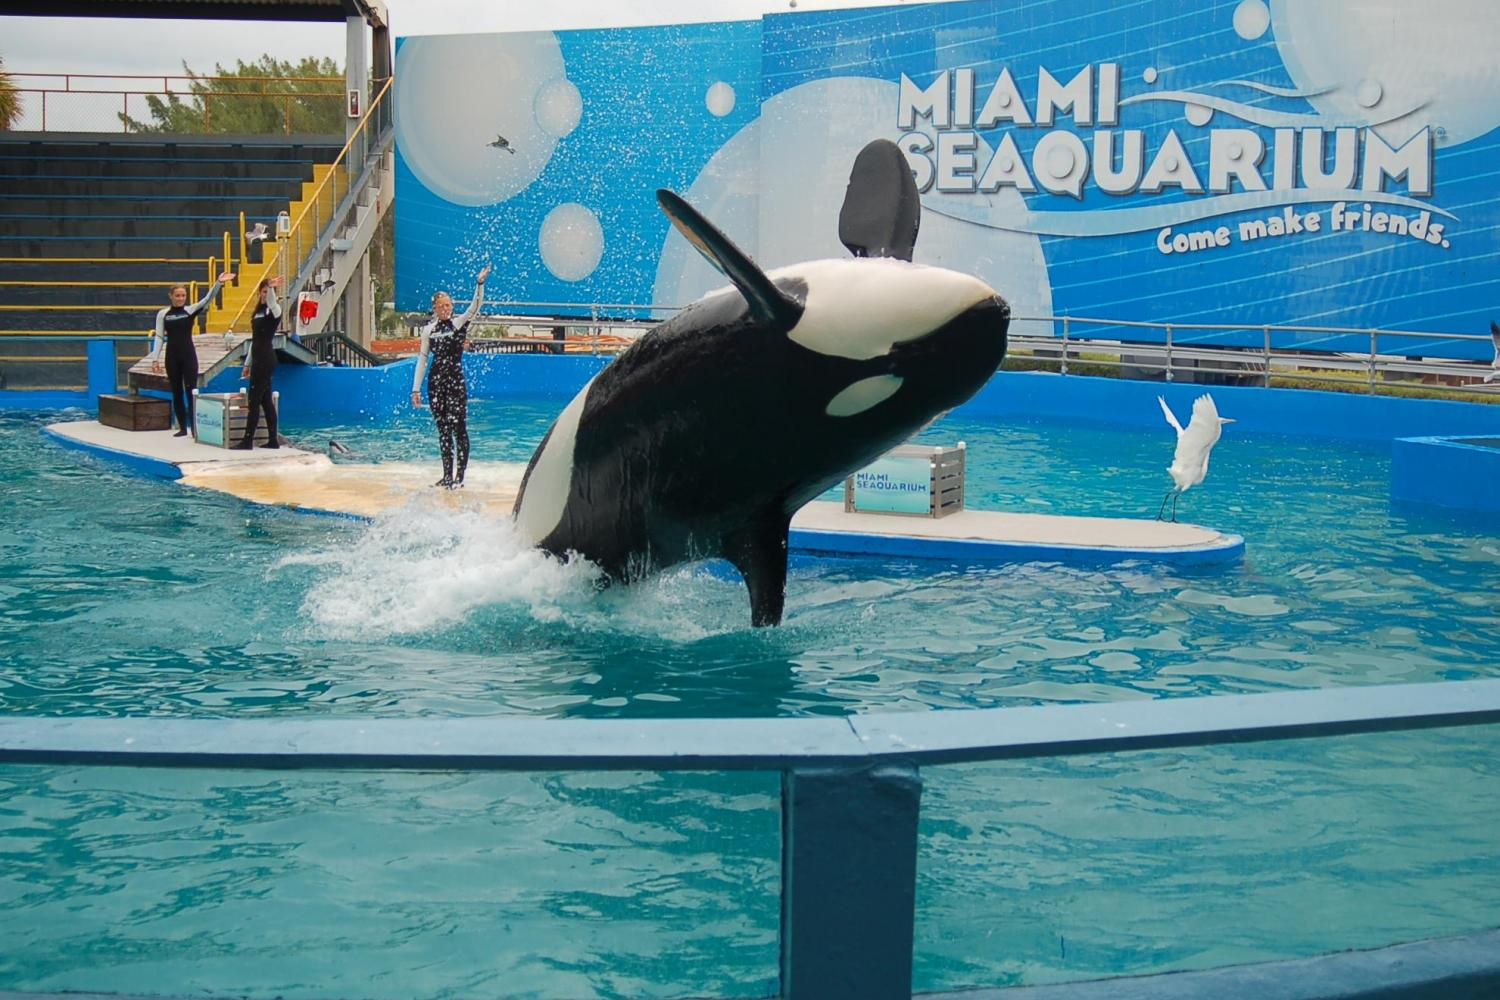 Miami Seaquarium - Attraction Ticket